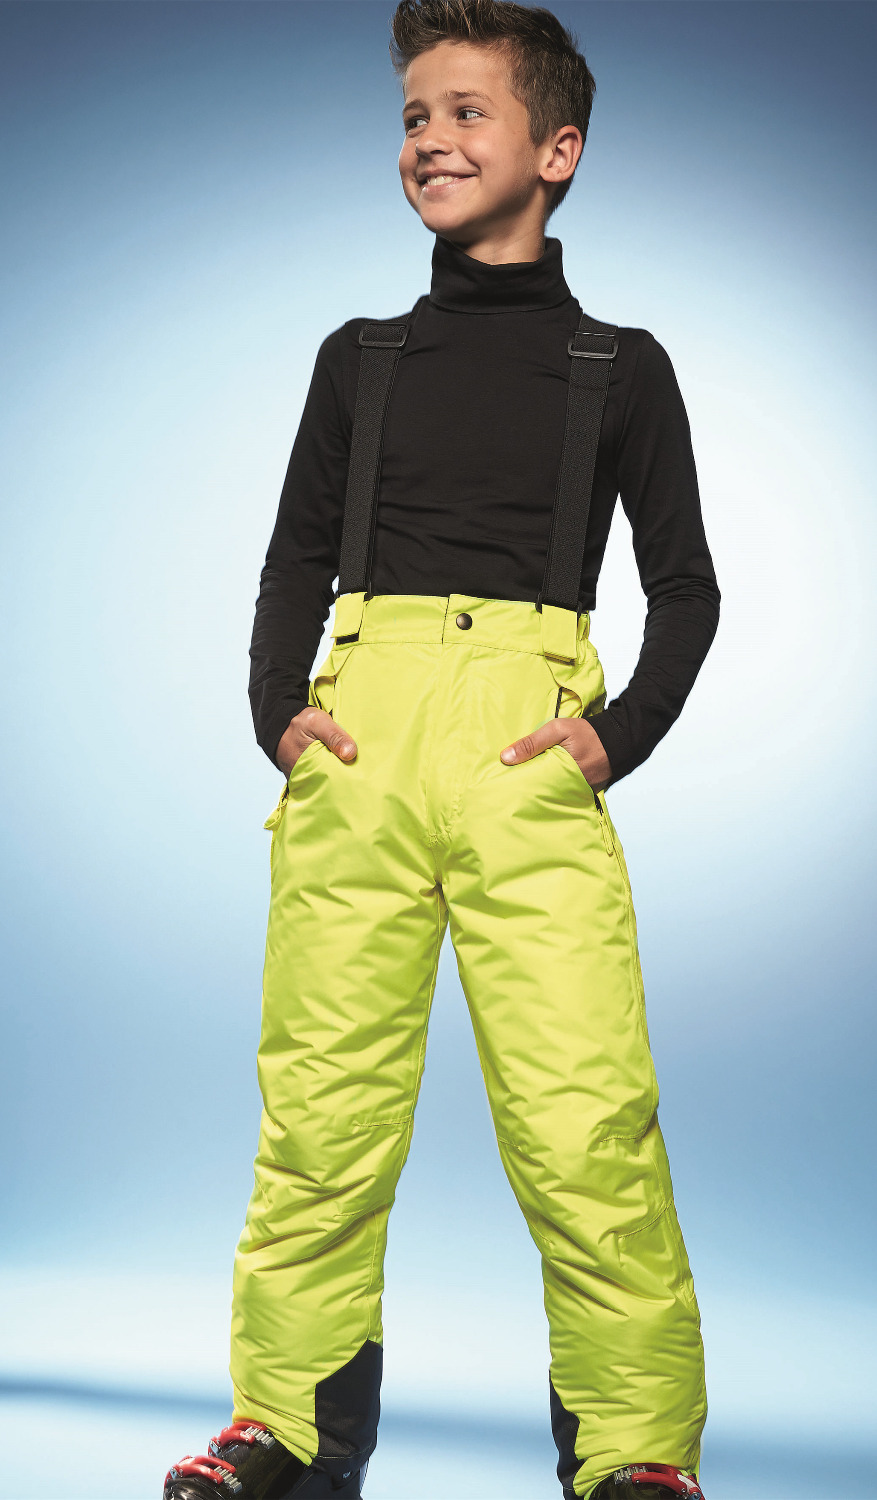 Find great deals on eBay for snow pants kids. Shop with confidence.